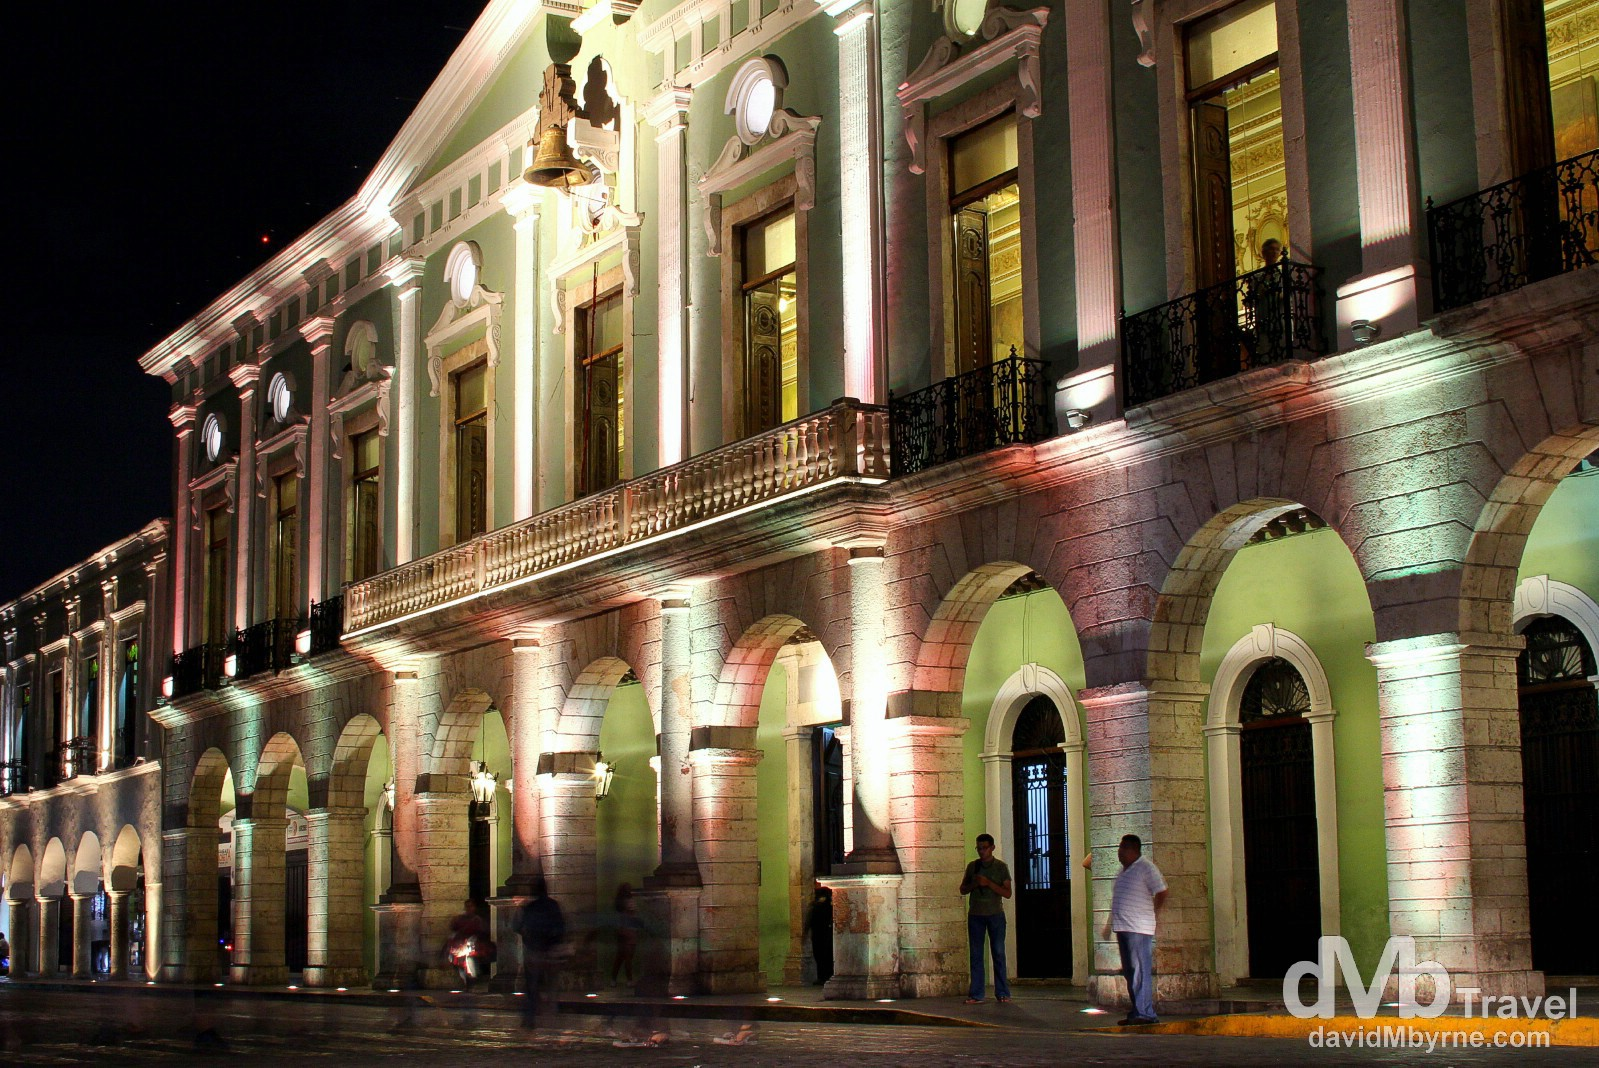 The Palacio de Gobierno on the north side of the plaza illuminated at night. It was built in 1892 on the site of the palace of the colonial governors but today houses the state of Yucatan's executive government offices. Merida, Yucatan Peninsula, Mexico. May 1st 2013.